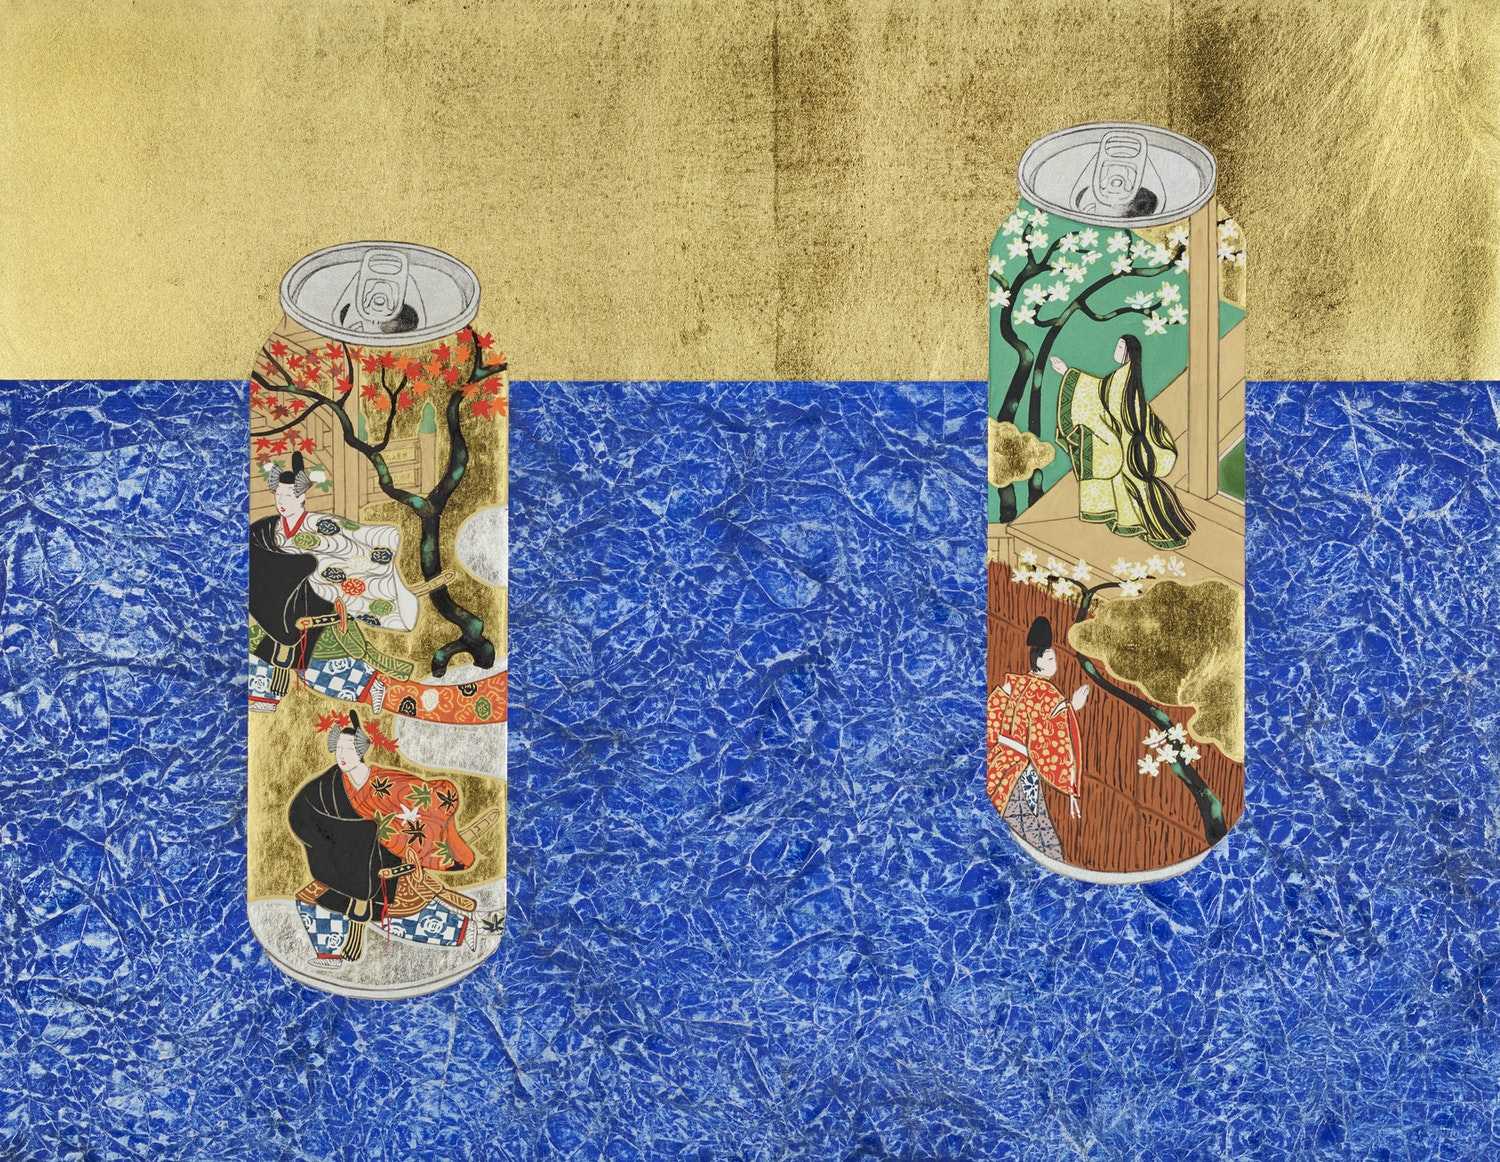 Yamamoto Tarō 'Cans decorated with scenes of chapters 'Young Murasaki' and 'Beneath the autumn leaves' from 'The Tale of Genji' on blue carpet' 2011